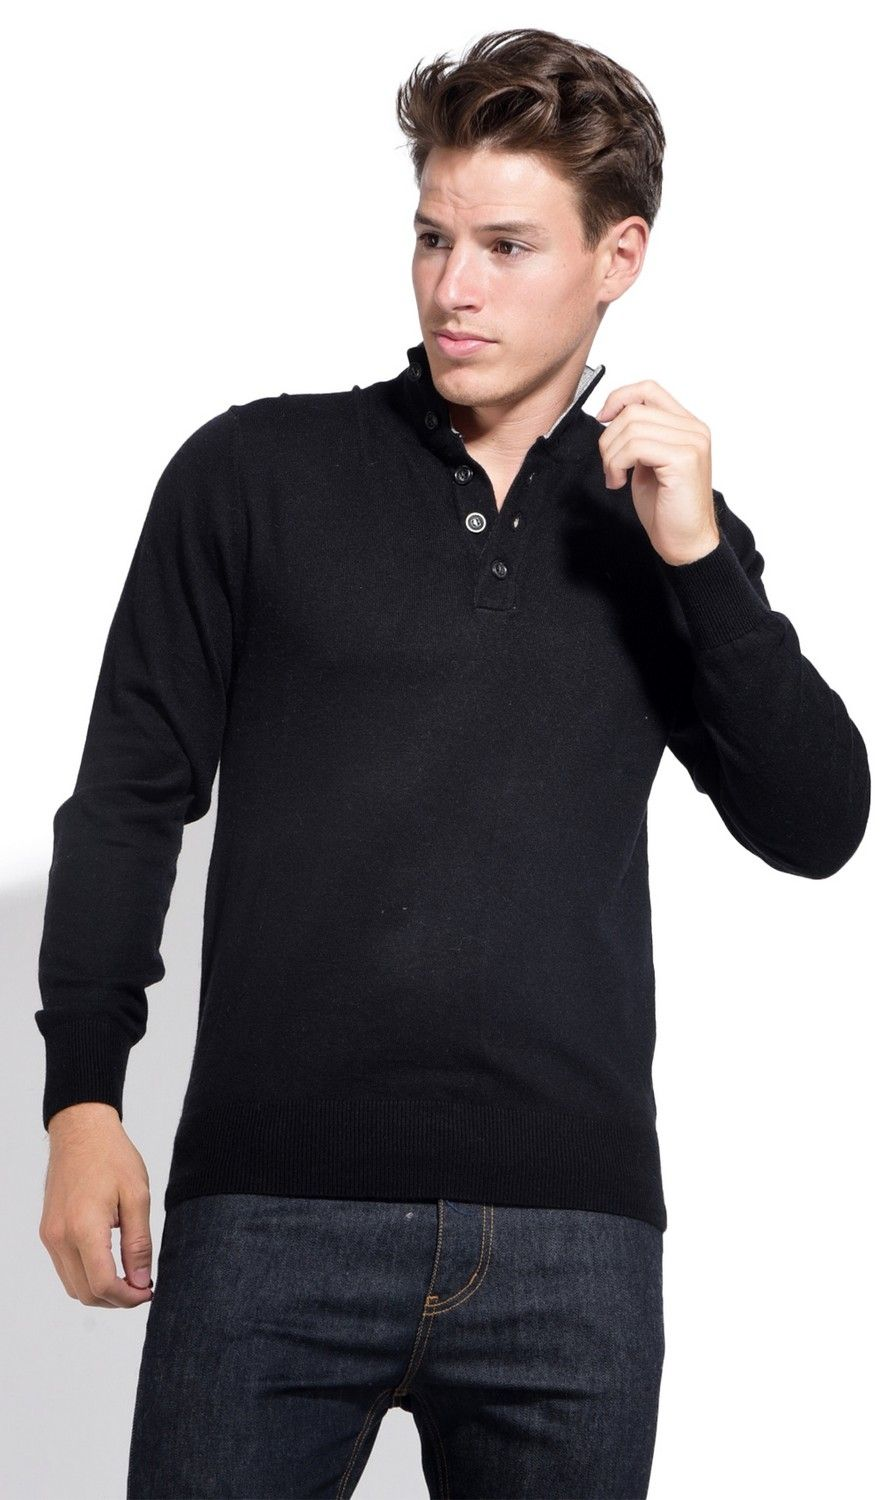 William De Faye High Neck Two-tone Collar Sweater with Buttons in Black